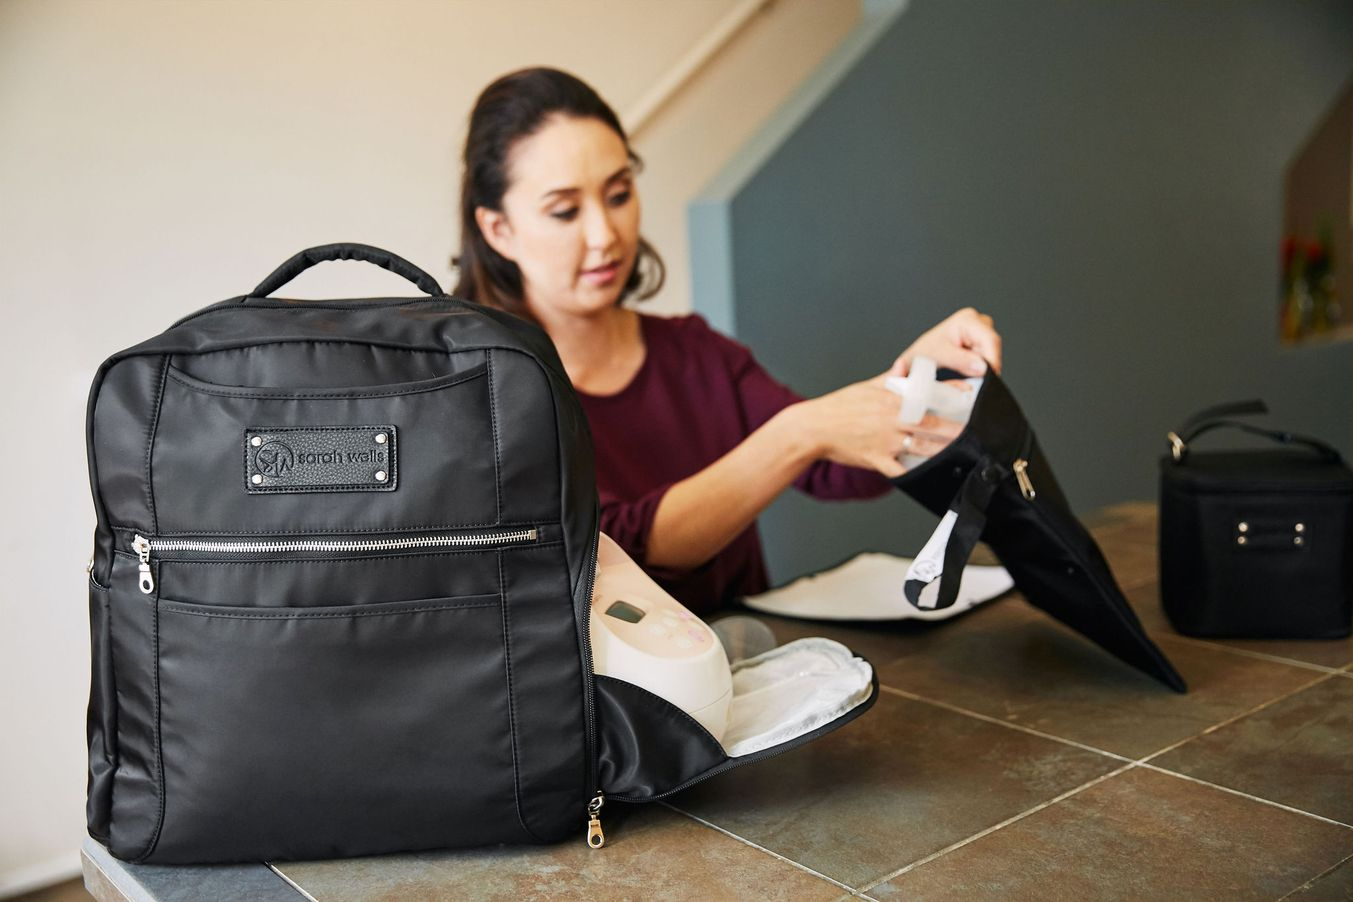 Sarah Wells Breast Pump Bag (Kelly-Anniversary Black)